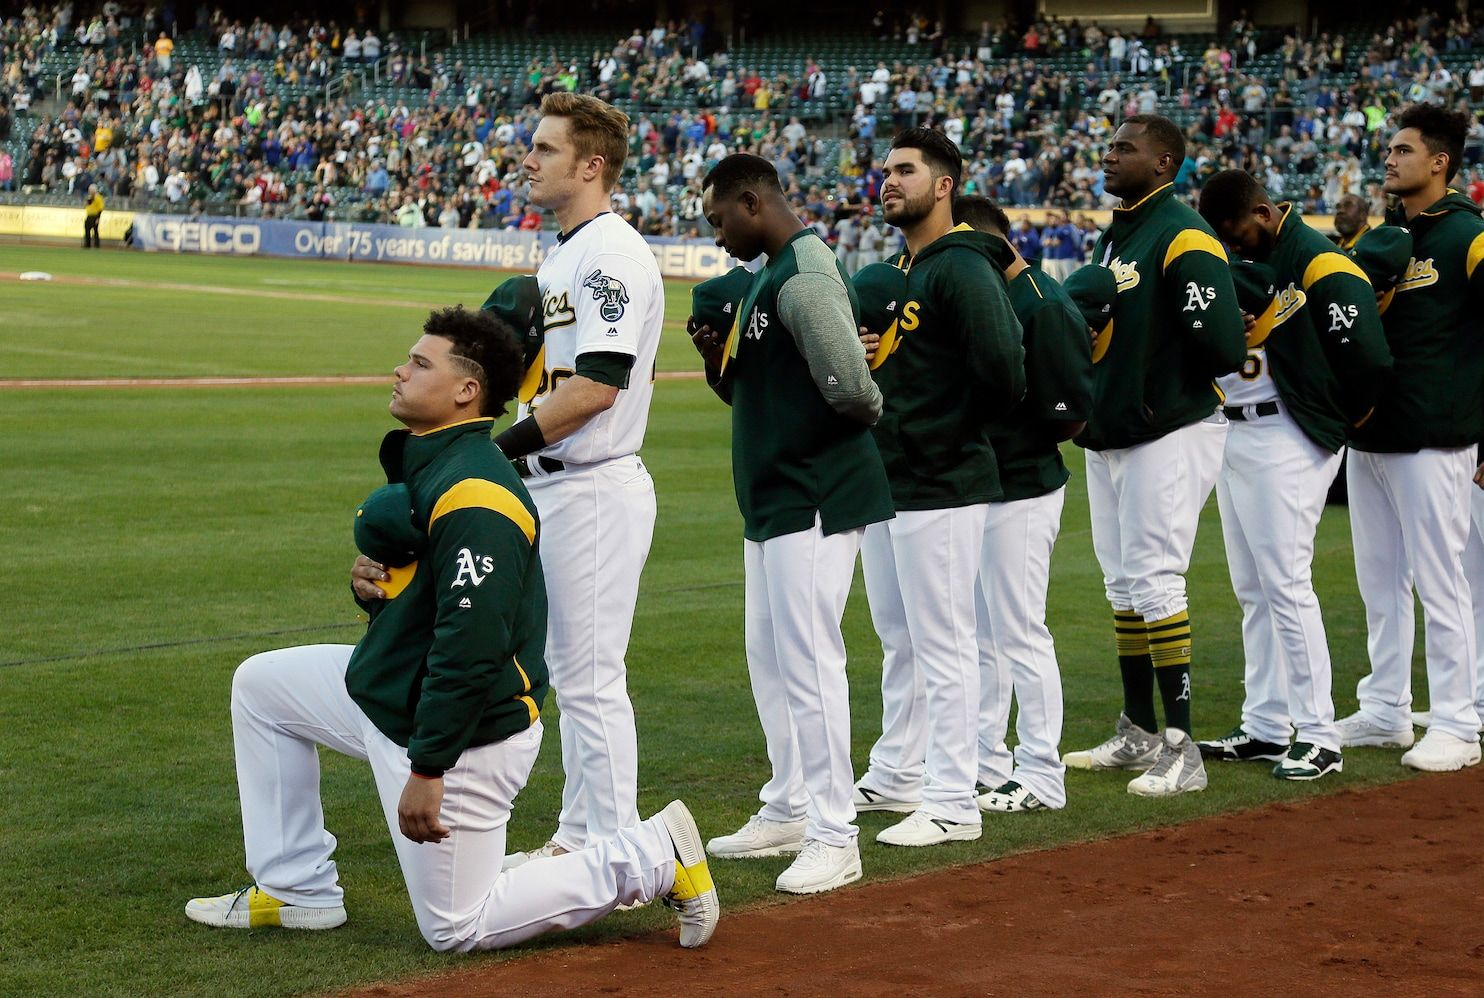 'To single out NFL players for doing this isn't something we should be doing': A's player takes up anthem protest - Washington Post